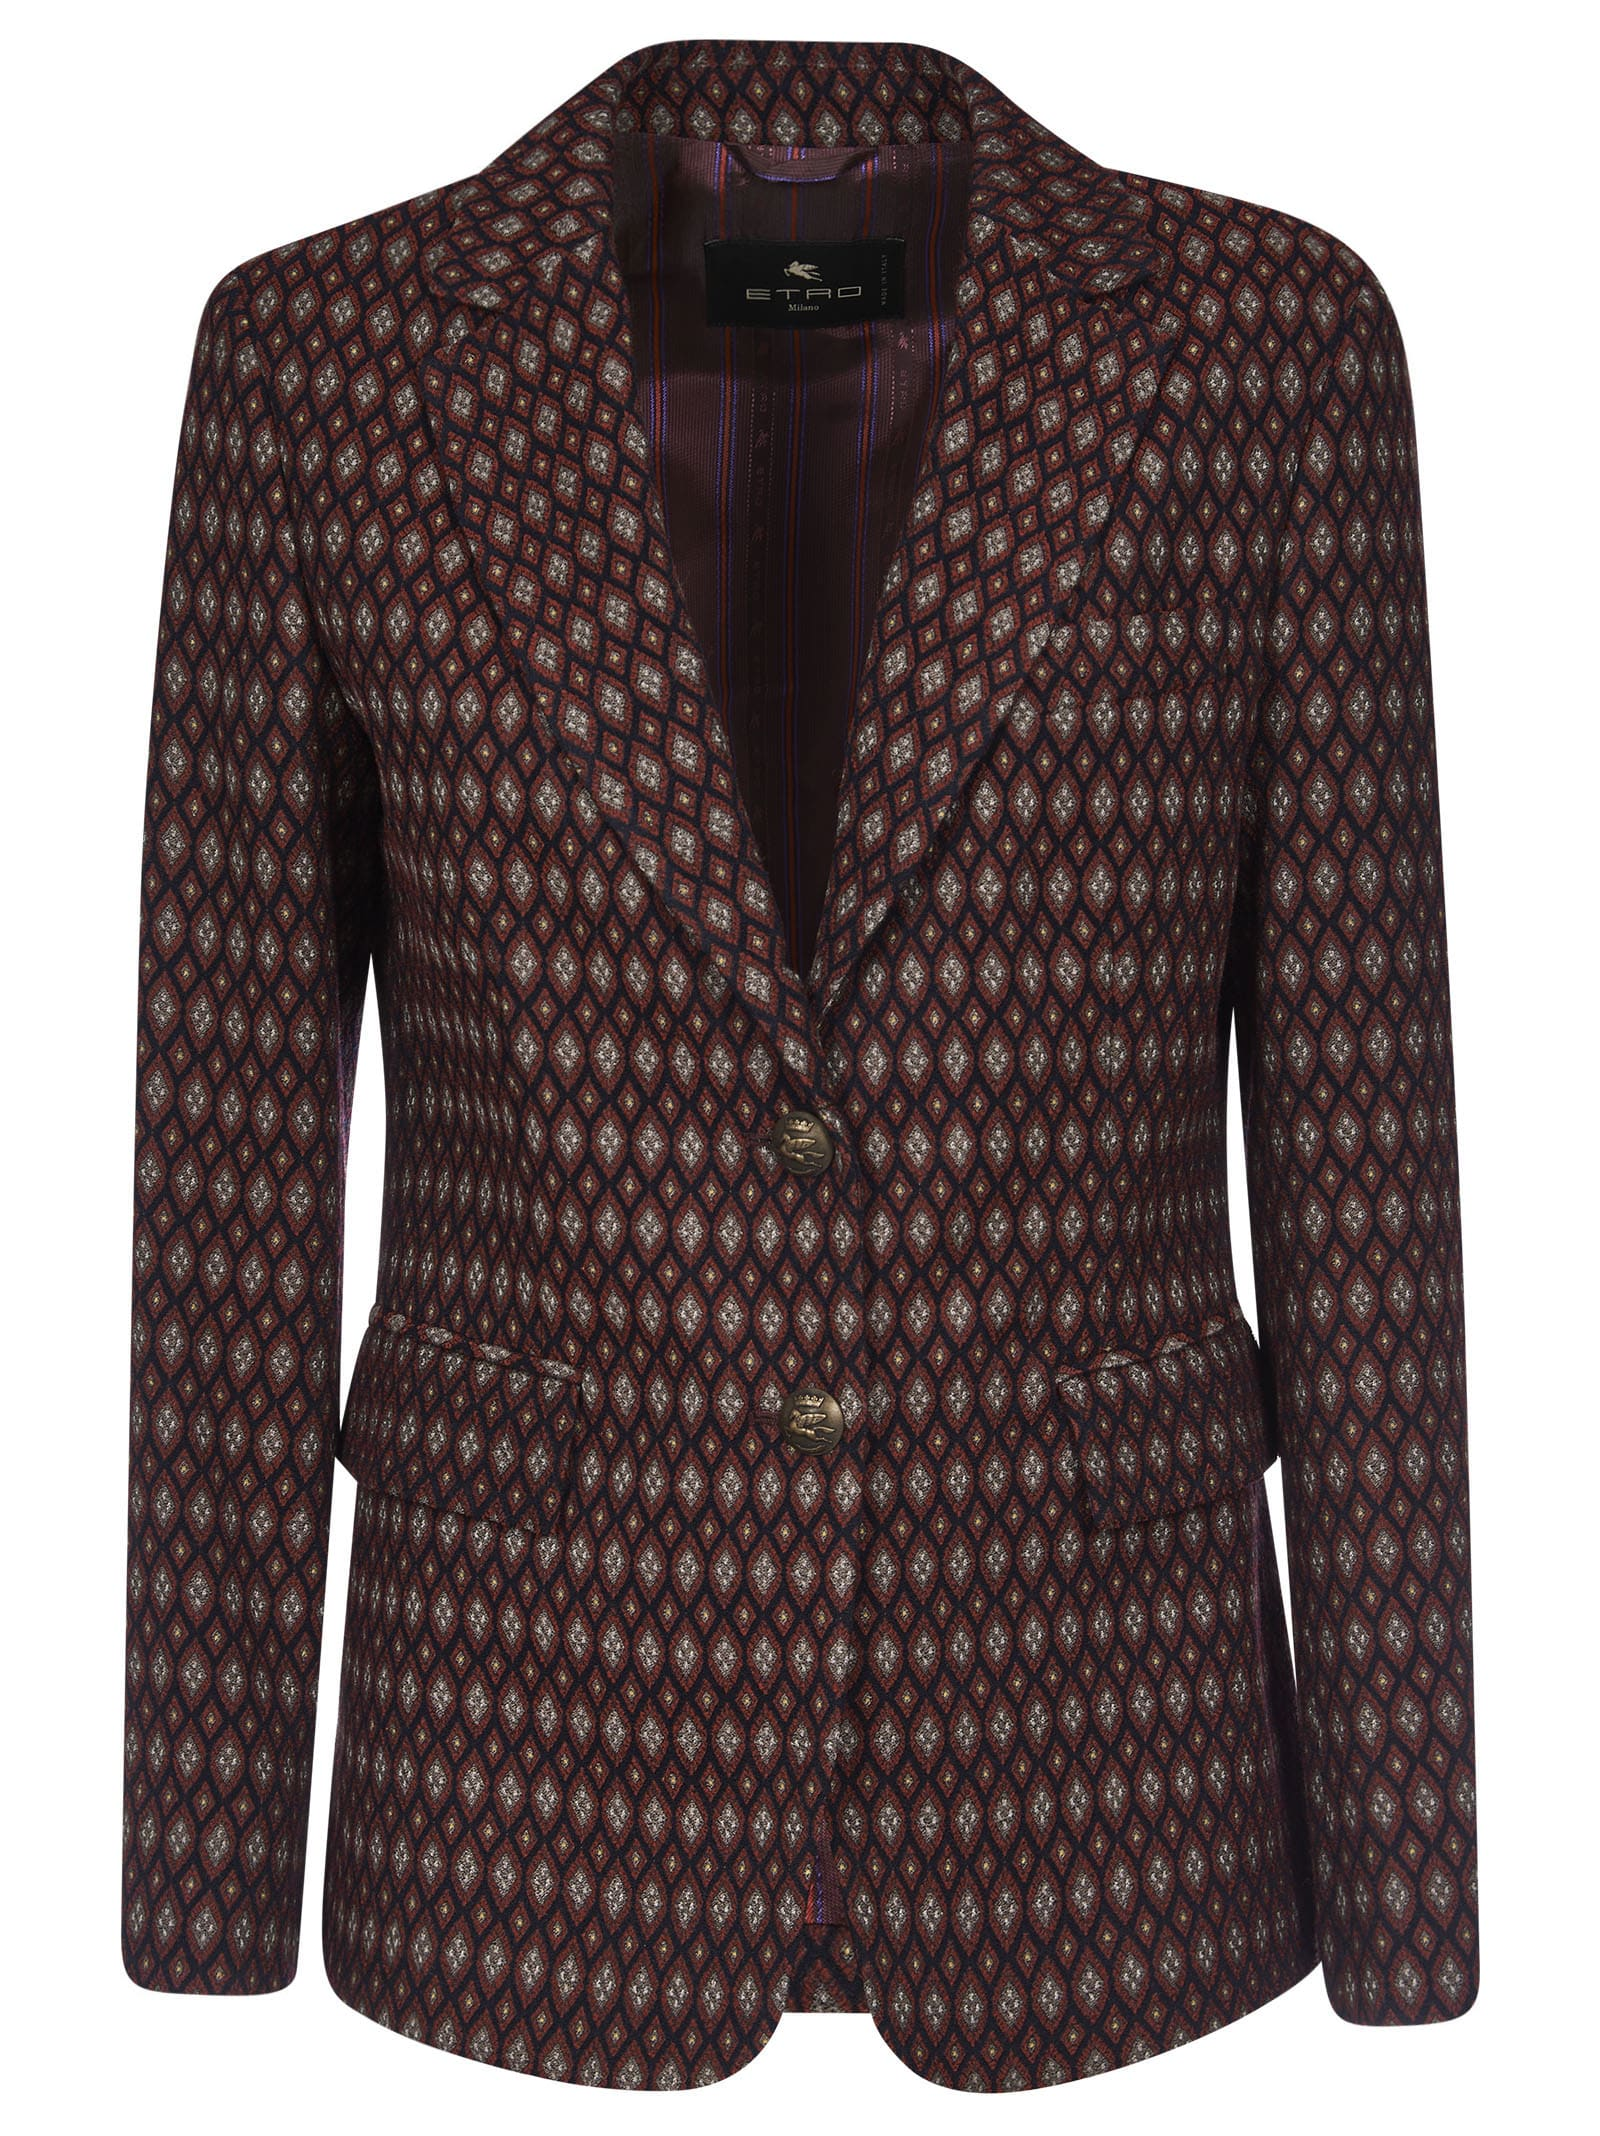 Etro Diamond Patterned Blazer